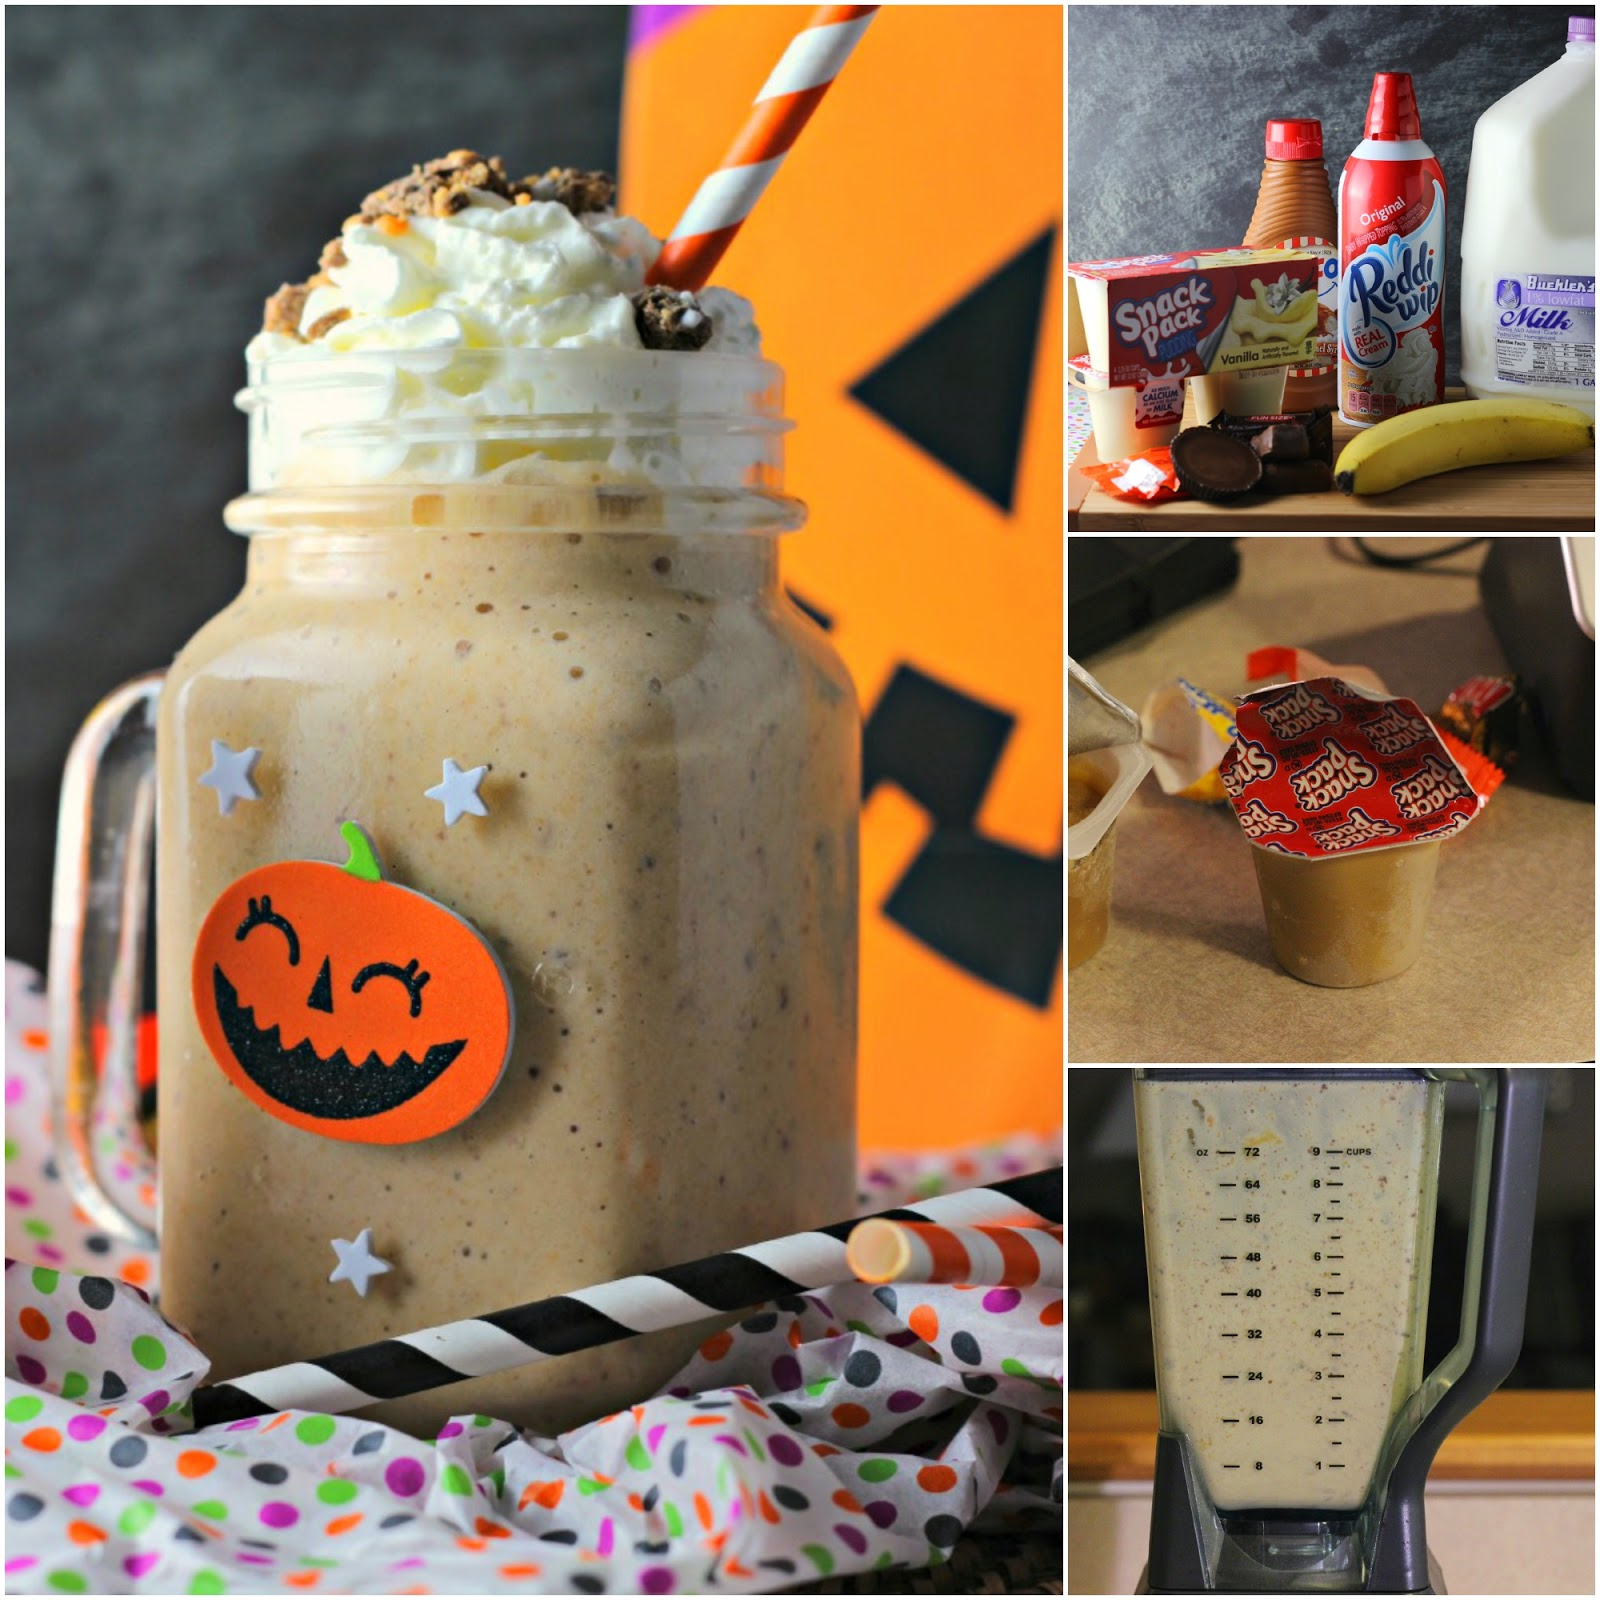 Making a Candy Bar Pudding Cup Smoothie #shop #snackpackmixins